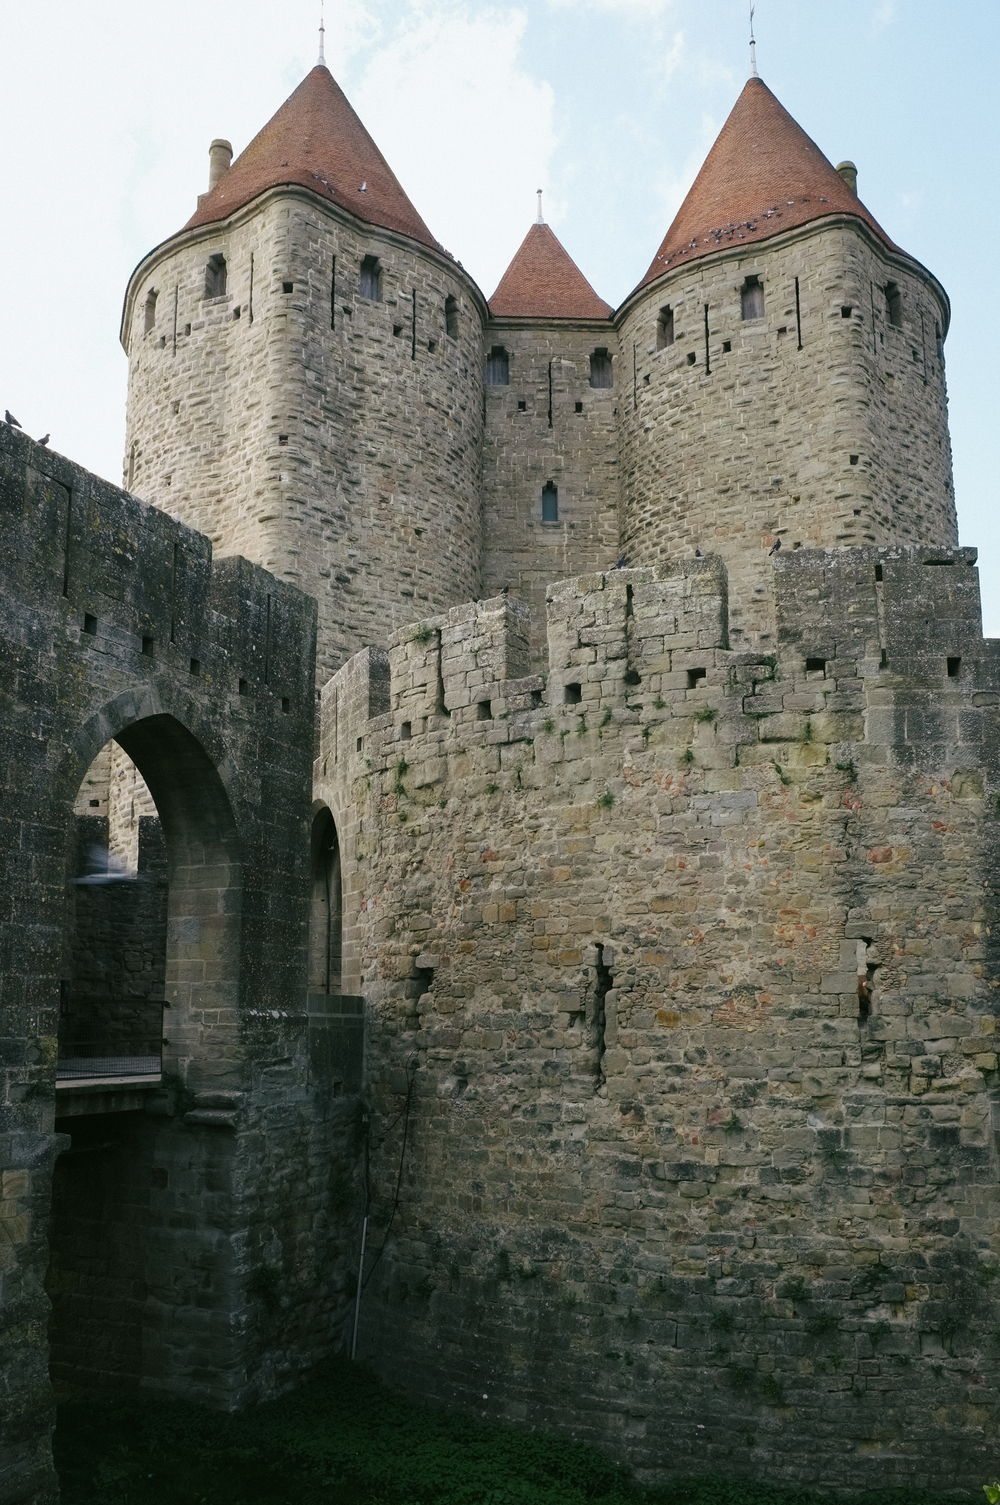 Drawbridge and turrets. Carcassonne